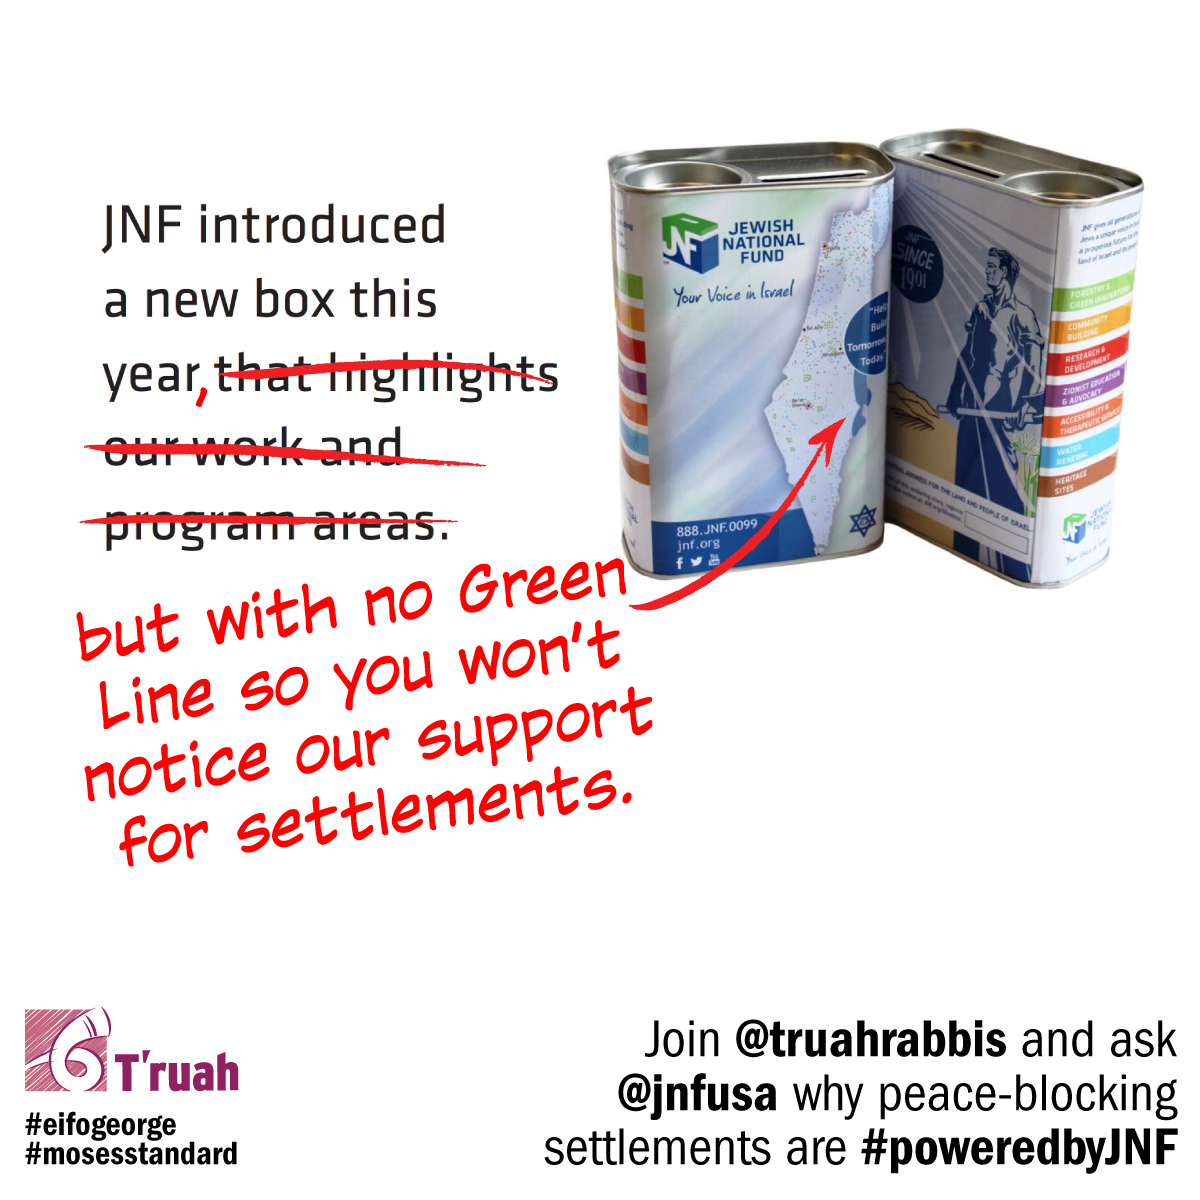 Truah campaign to stop JNF support for settlements